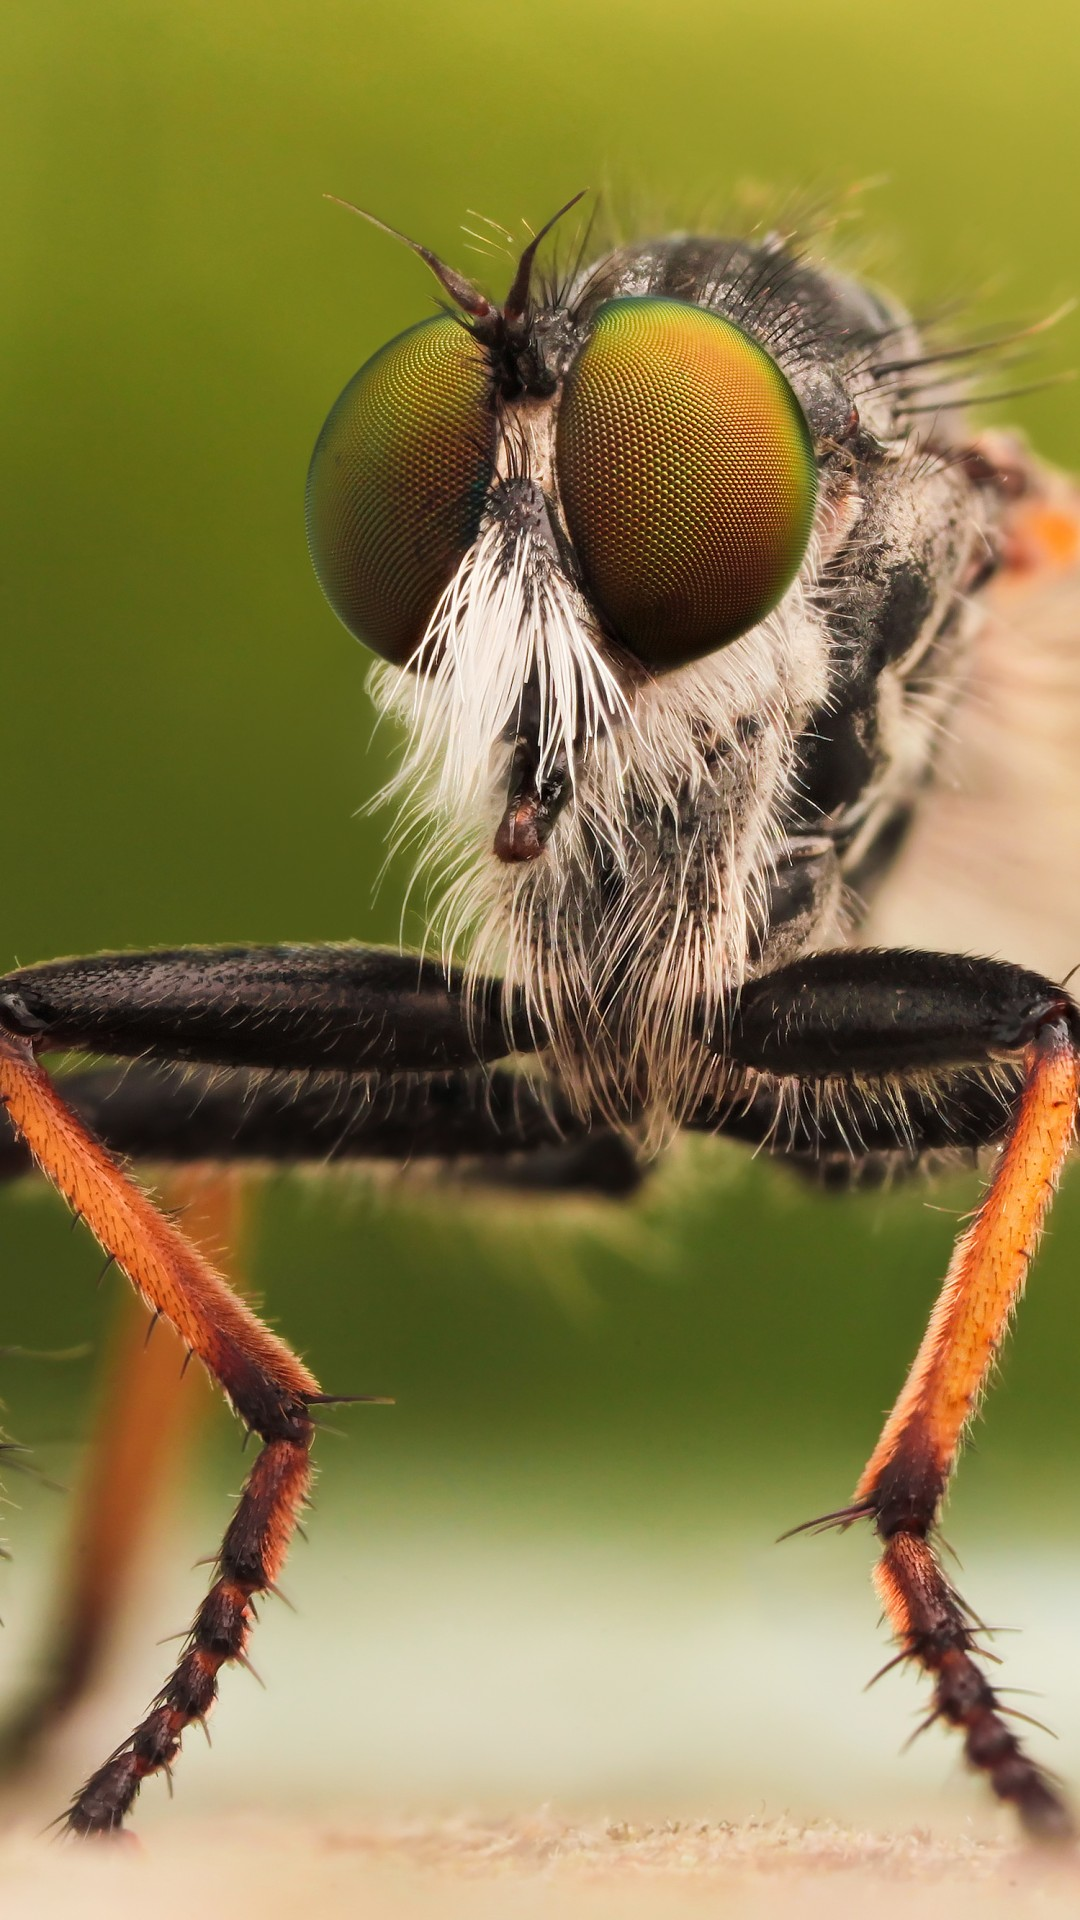 Wallpaper Fly Insects Macro Green Orange Animals 1258